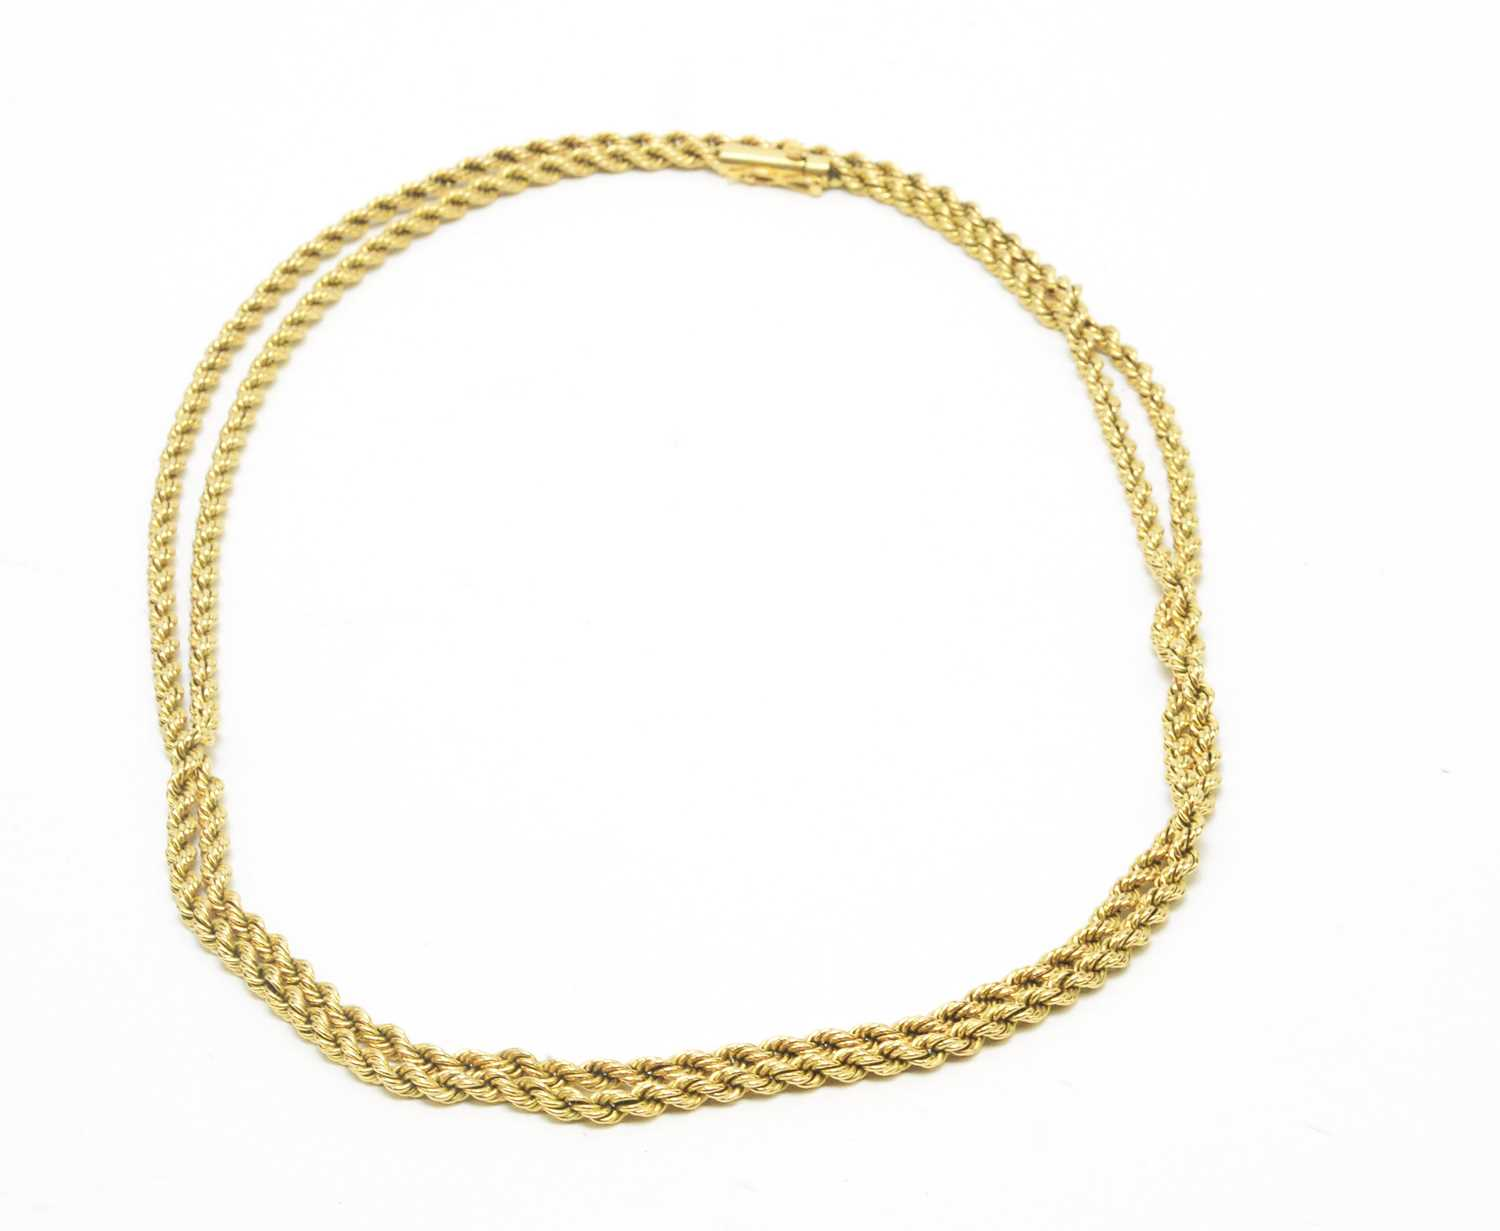 Lot 62 - A fine Egyptian 18ct. yellow gold chain necklace.